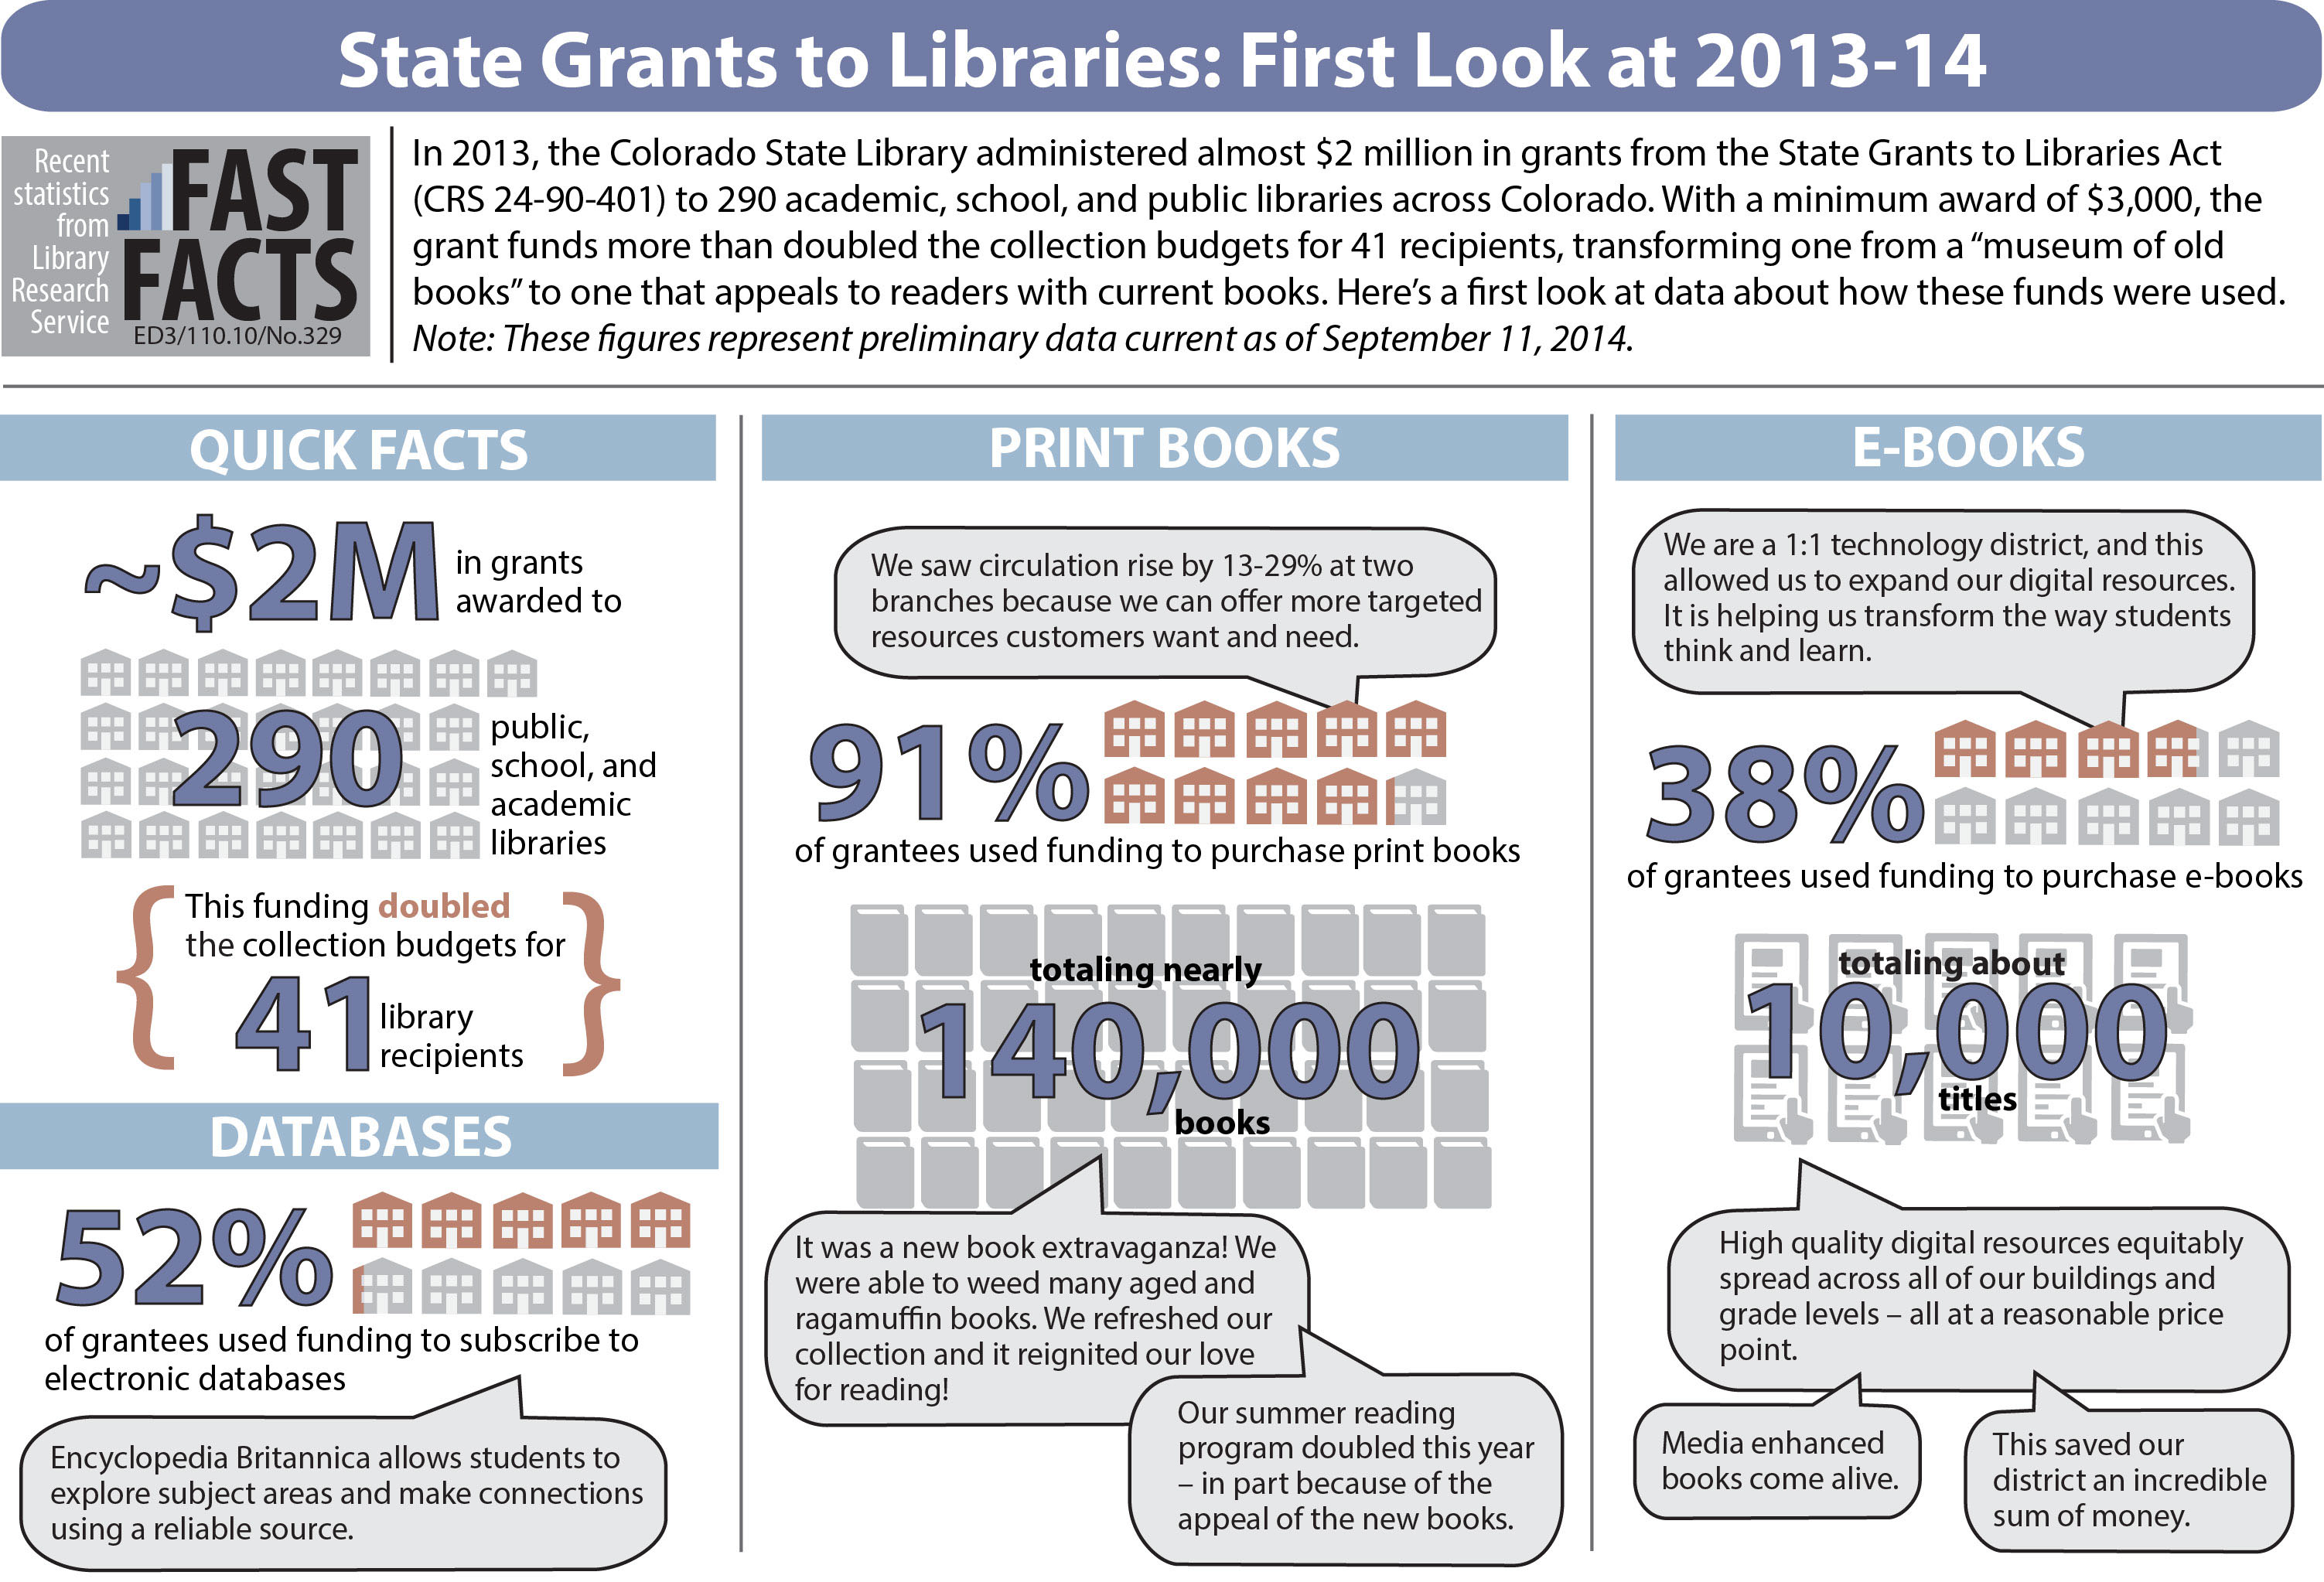 State Grants to Libraries: First Look at 2013-14